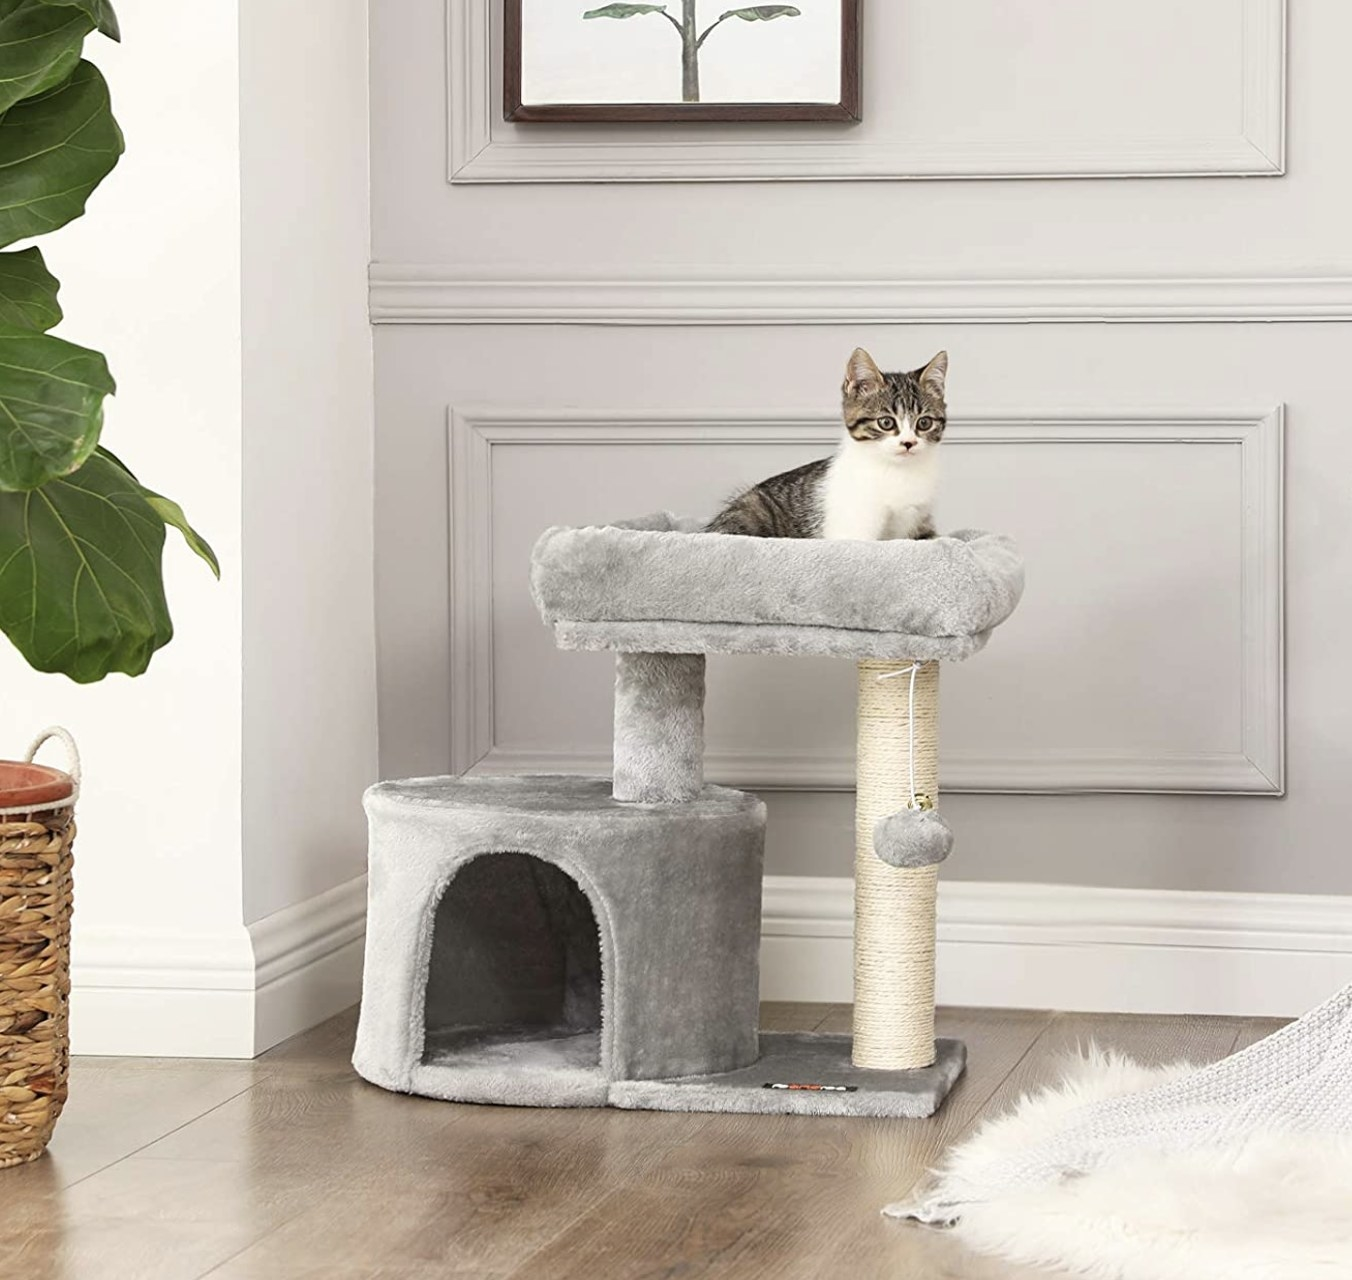 a can with stripes sitting on top of a cat tree that is grey with an ivory scratch post